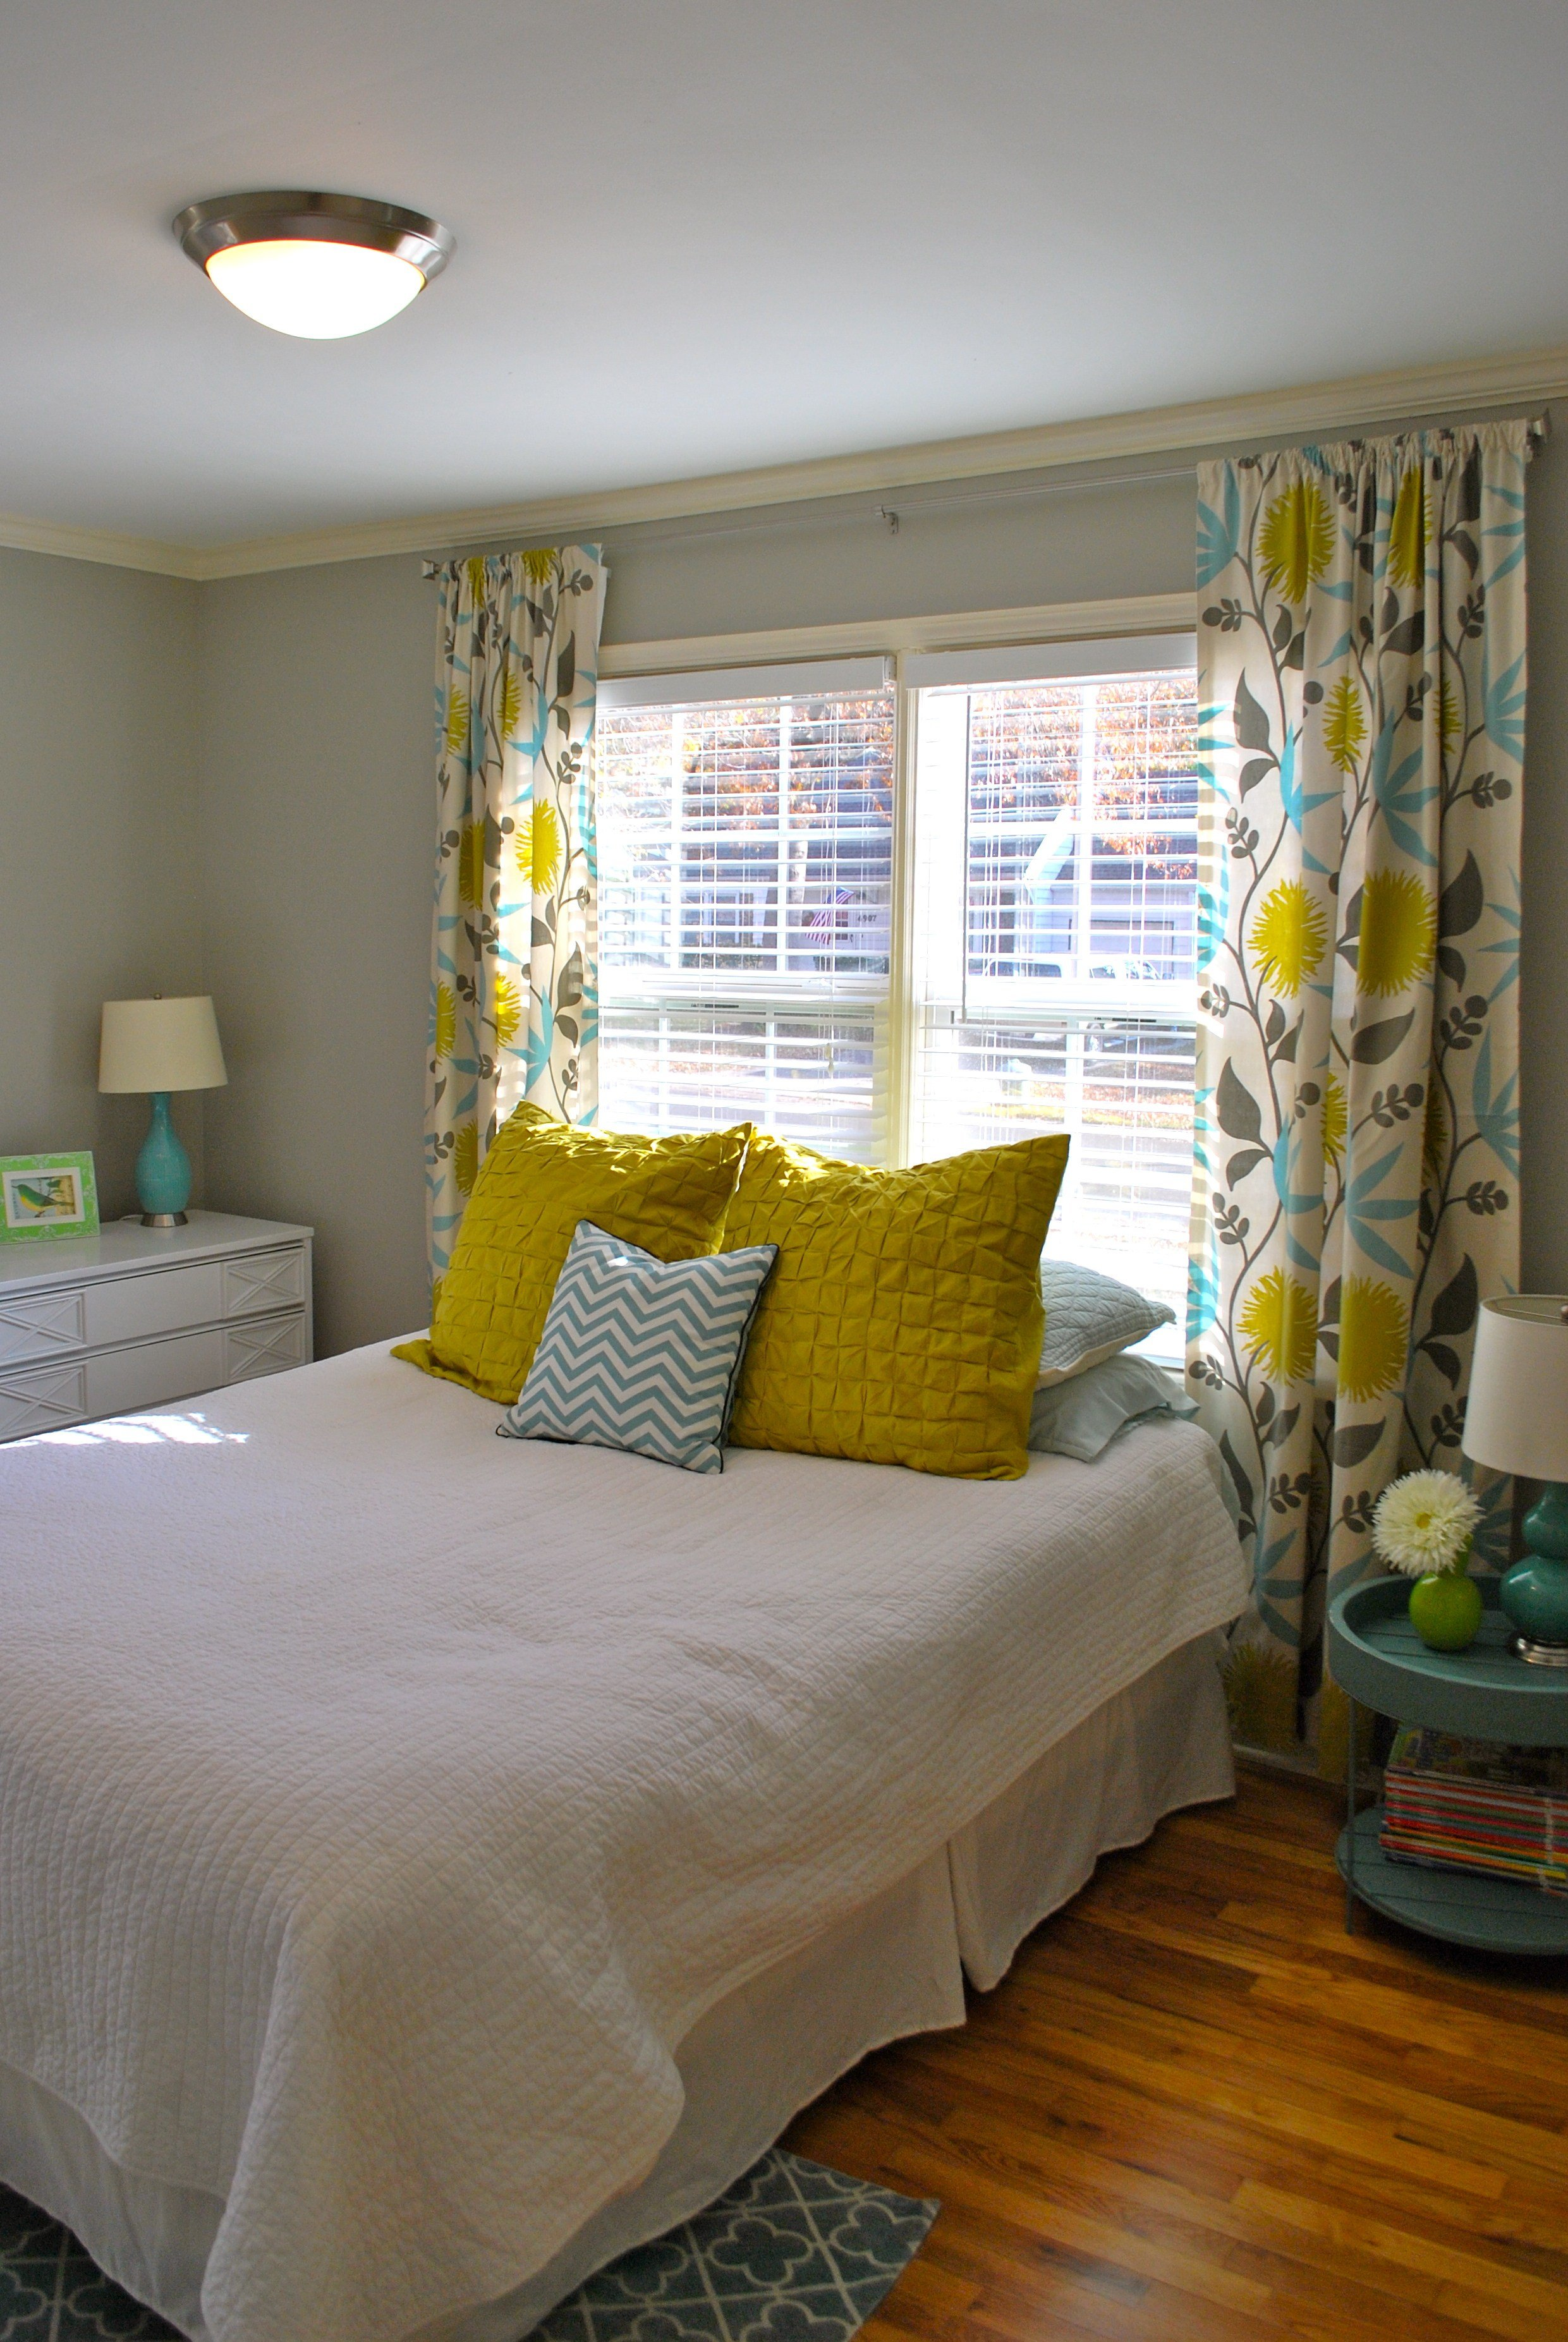 Best Guest Room Design The Suburban Urbanist With Pictures